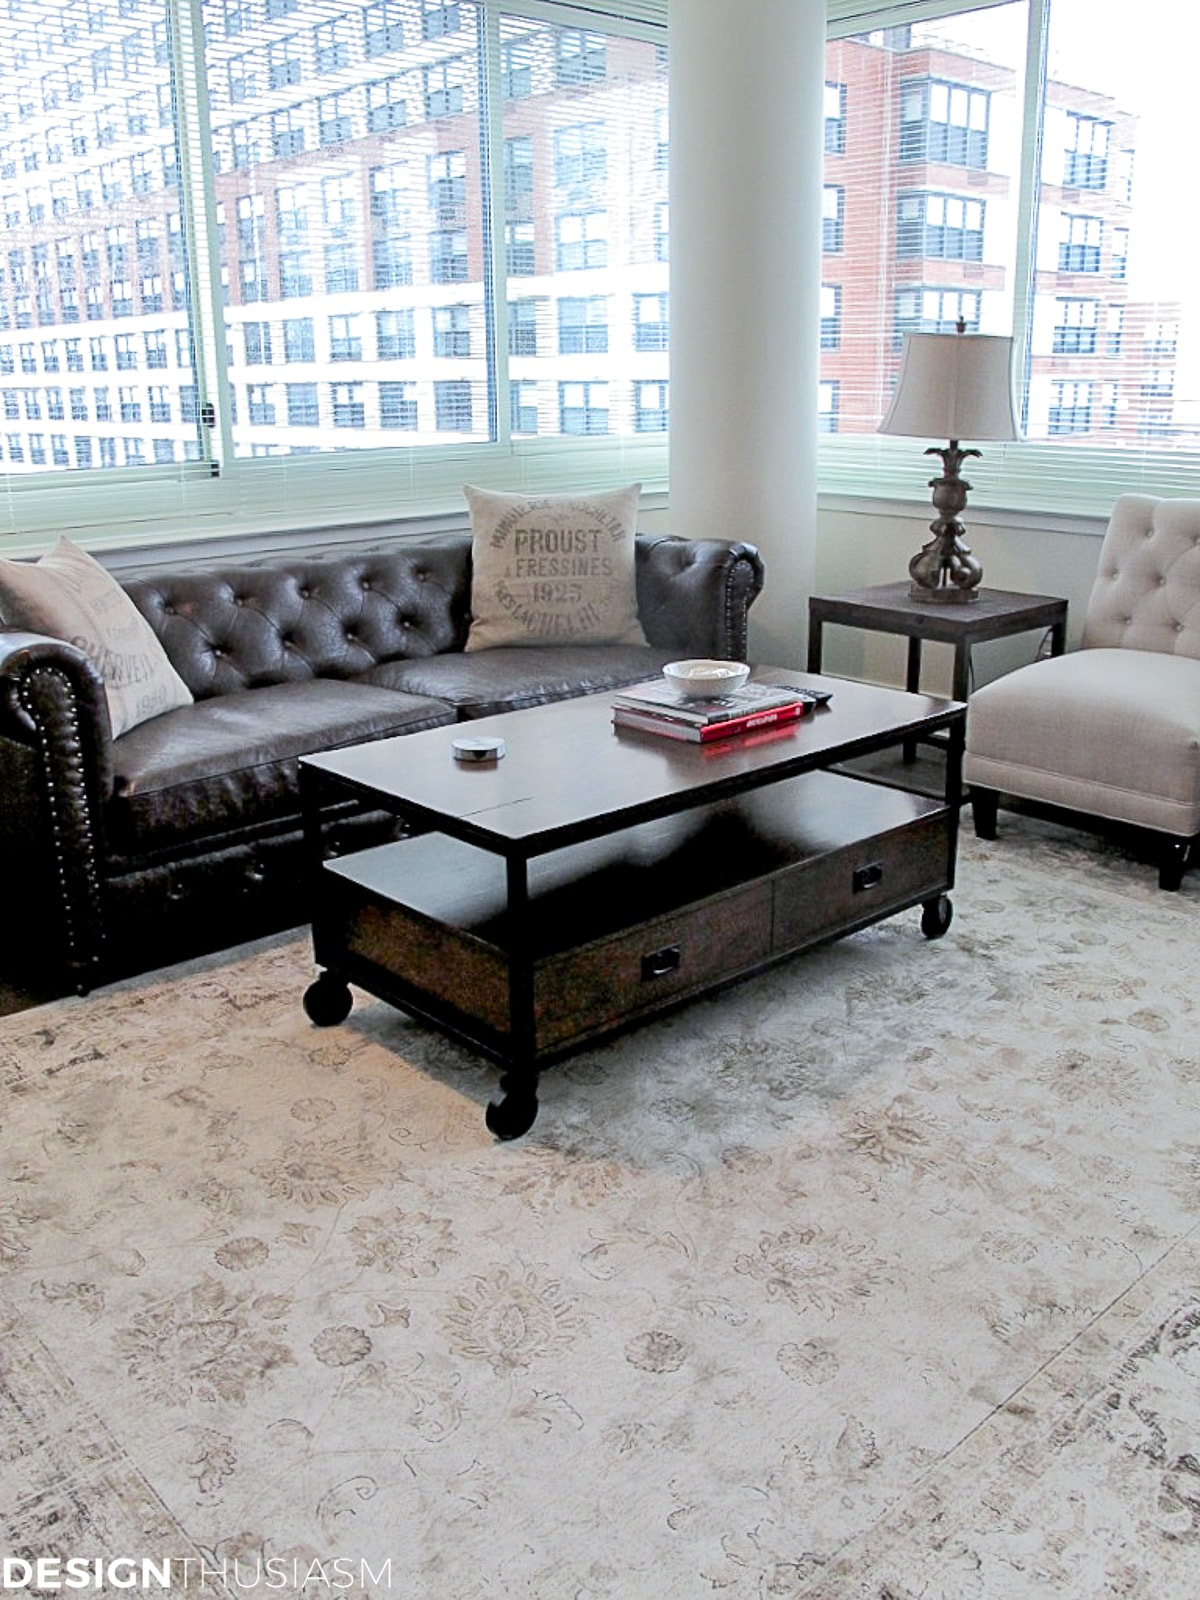 Bachelor Pad Ideas Decorating A Young Man S Apartment On A Budget